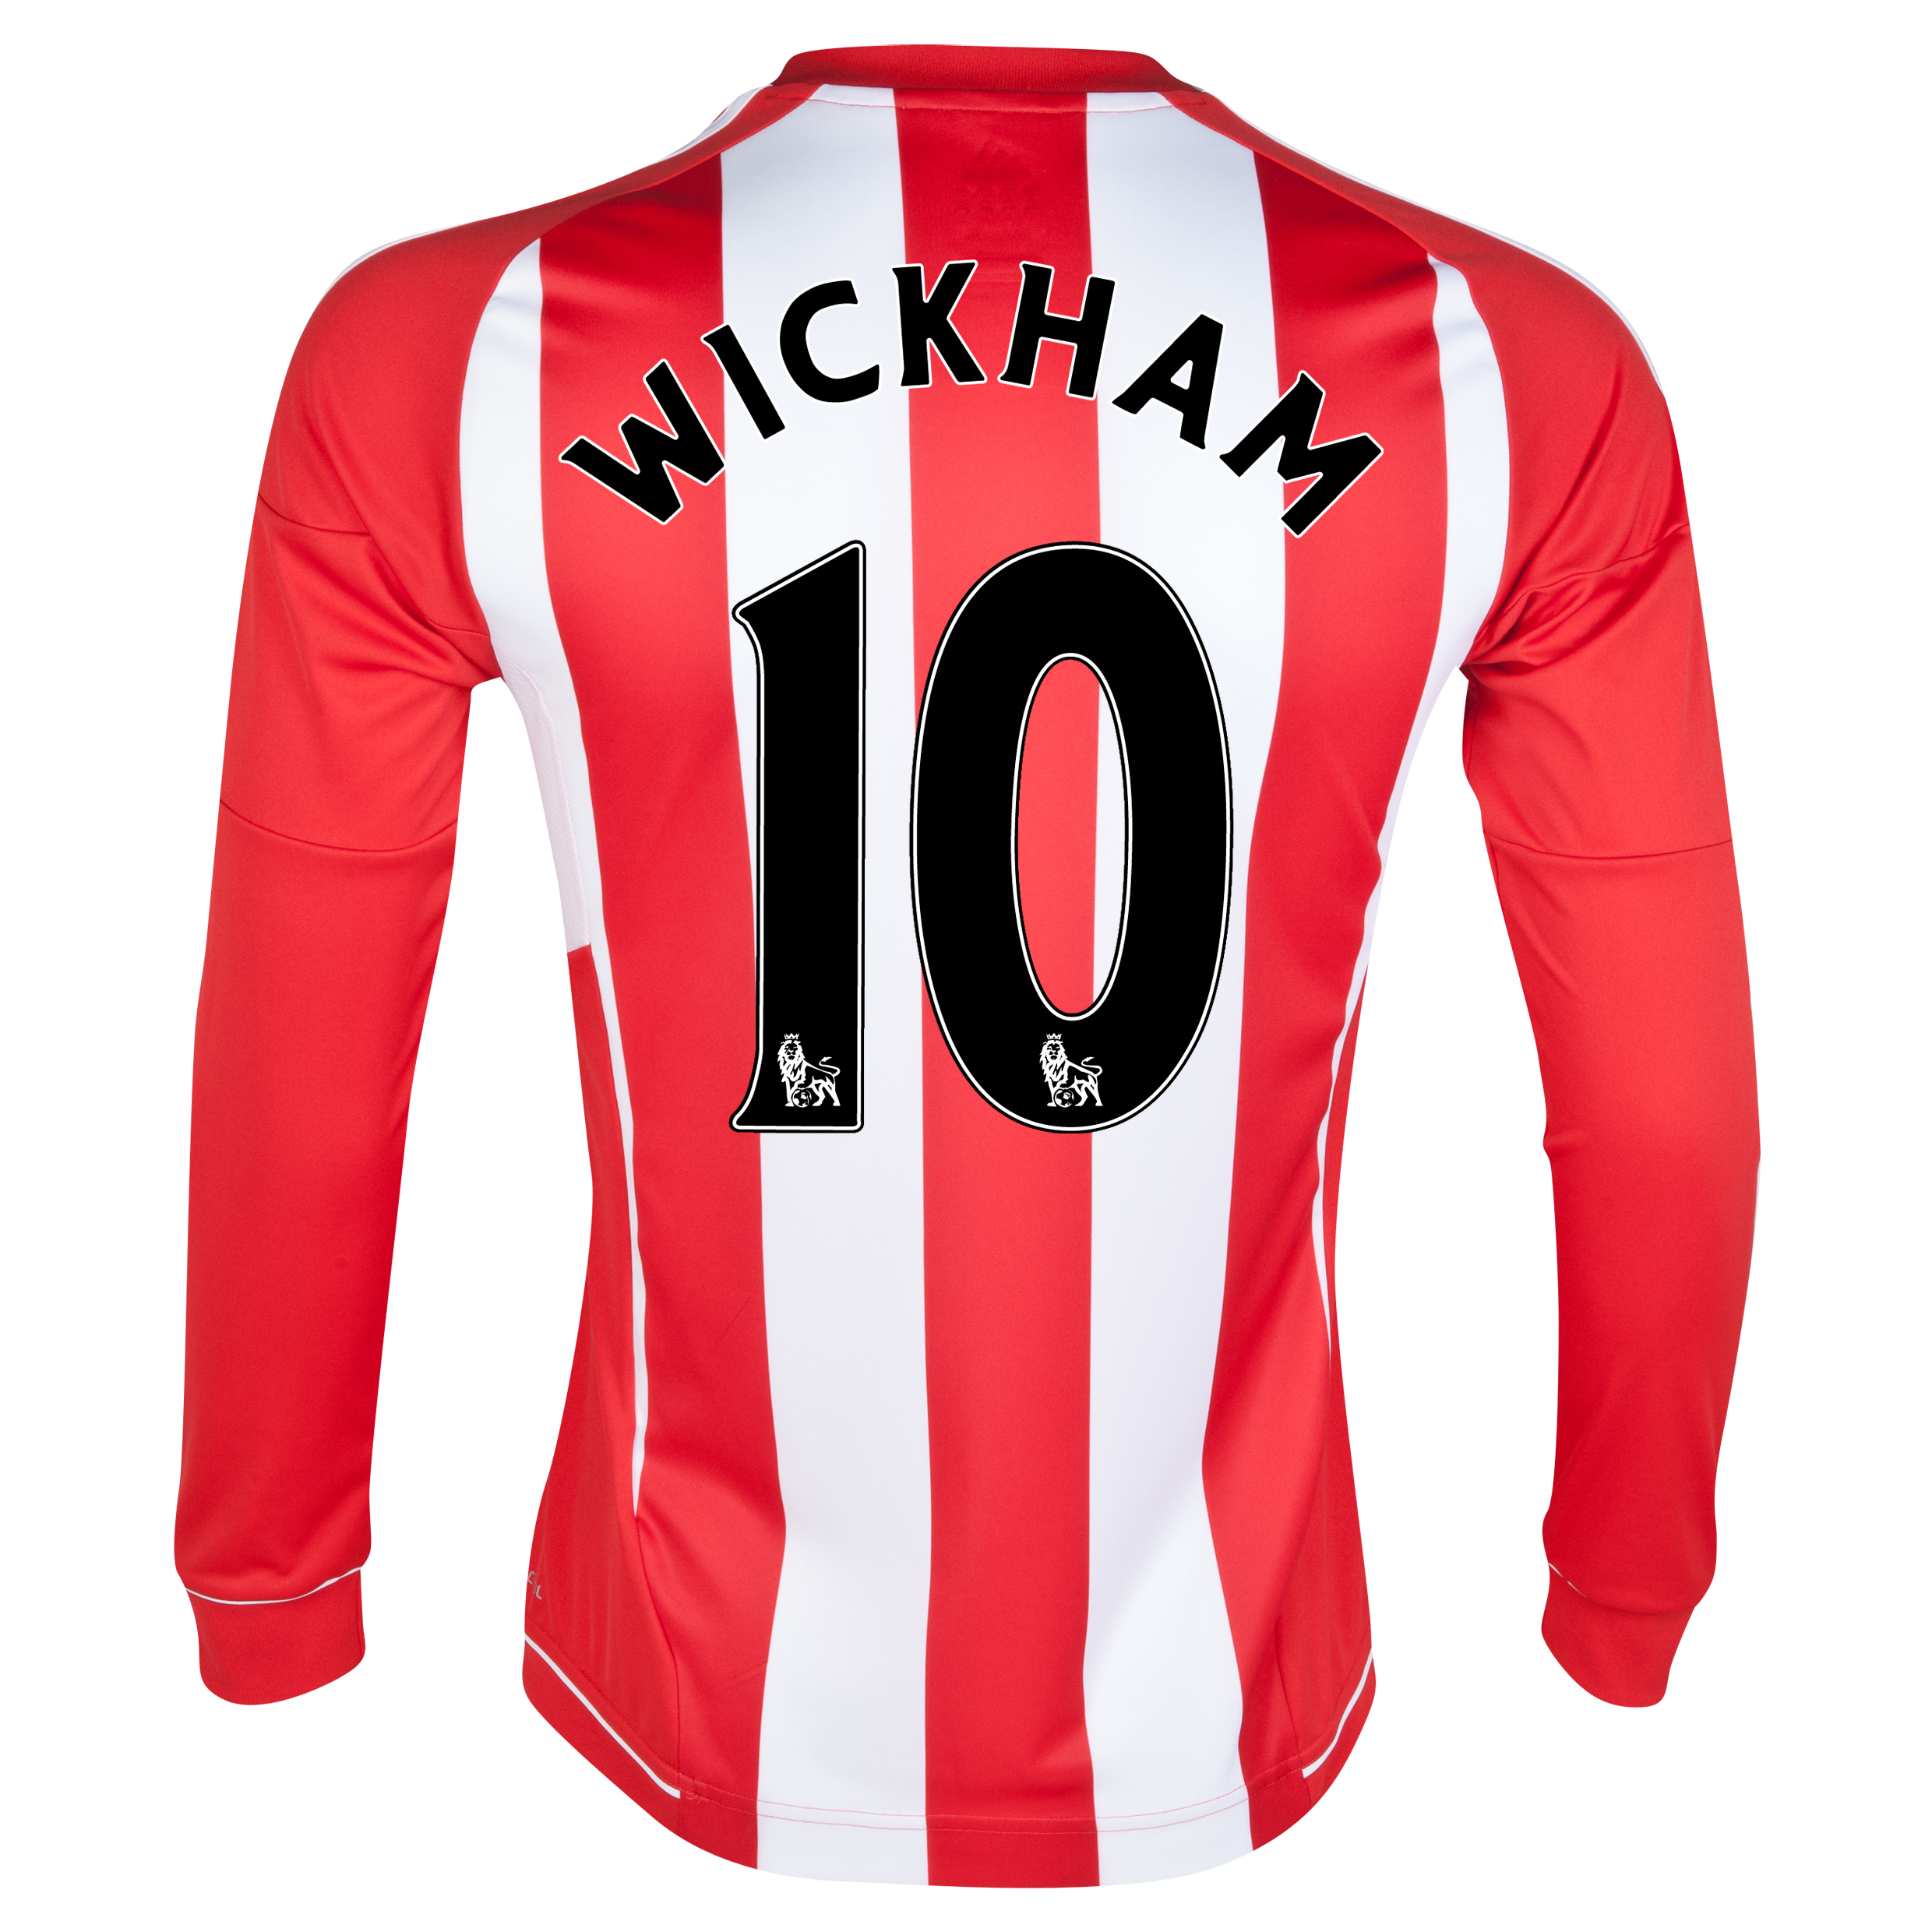 Sunderland Home Shirt 2012/13 - Long Sleeved with Wickham 10 printing